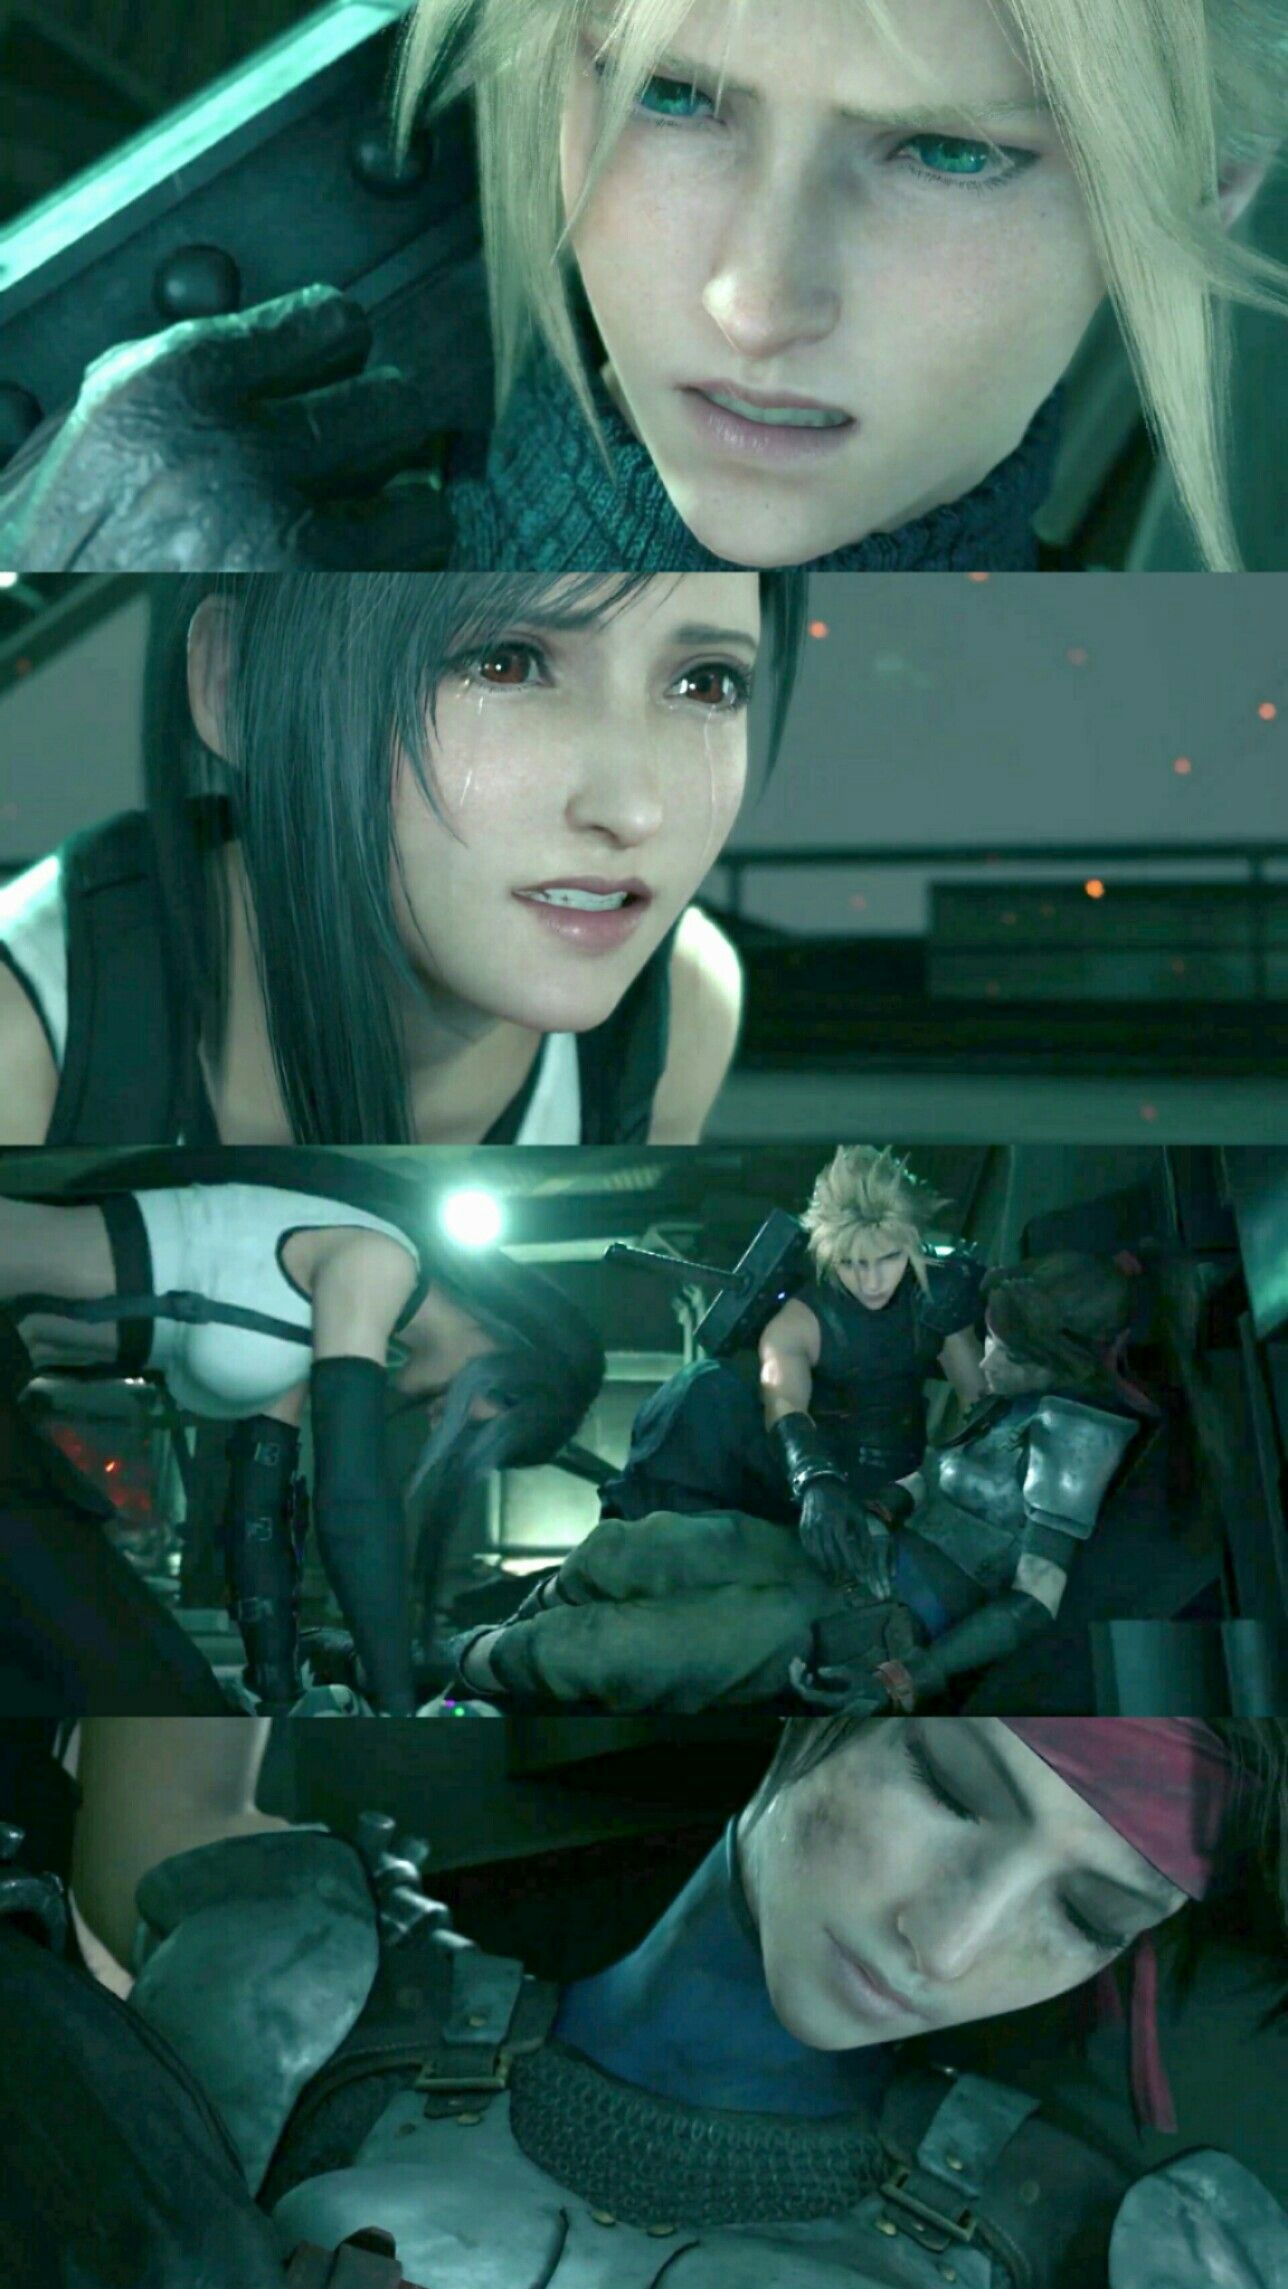 This Is A Saddest Moment In The First Part Of The Final Fantasy 7 Storyline Jessie Might Not Im Final Fantasy Vii Final Fantasy Vii Remake Final Fantasy Girls